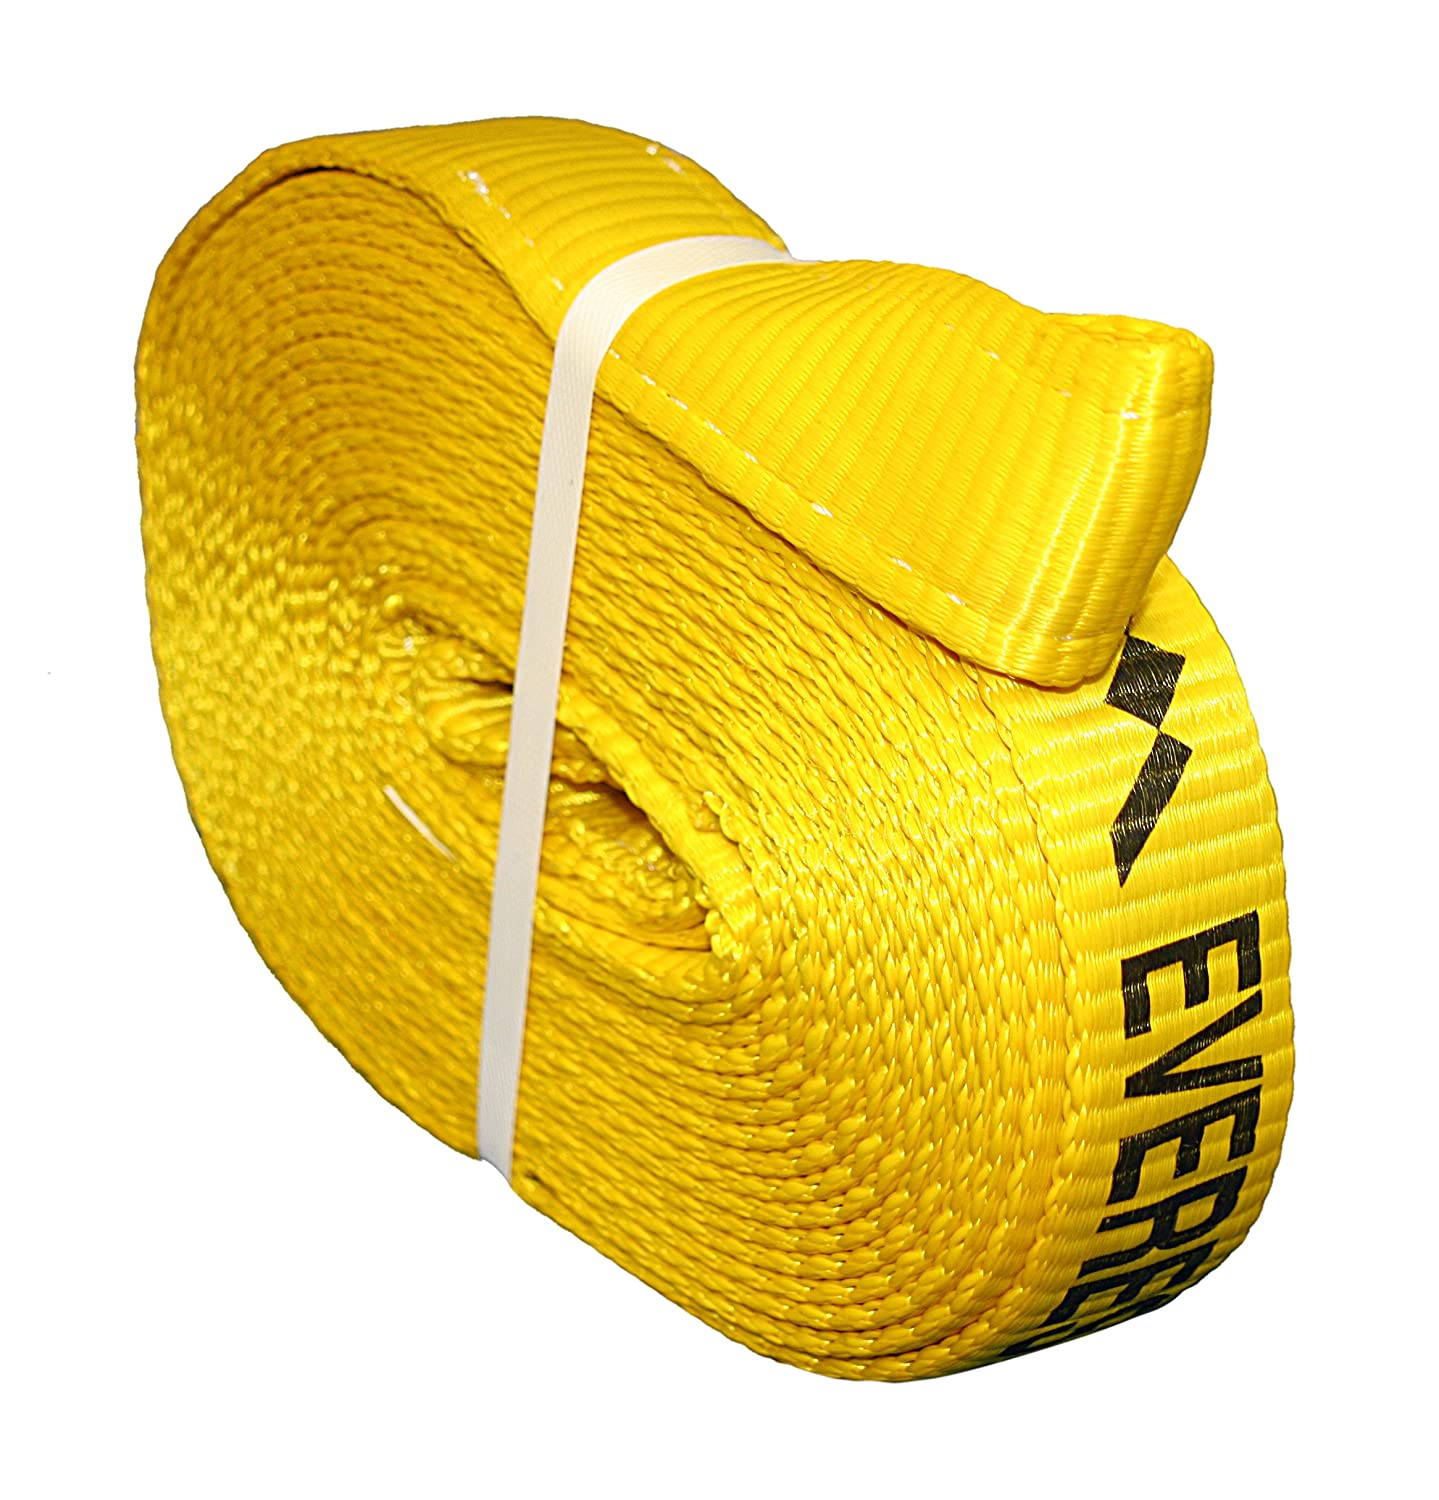 Everest C1064 Yellow 2-Inch x 30-Feet Recovery Strap